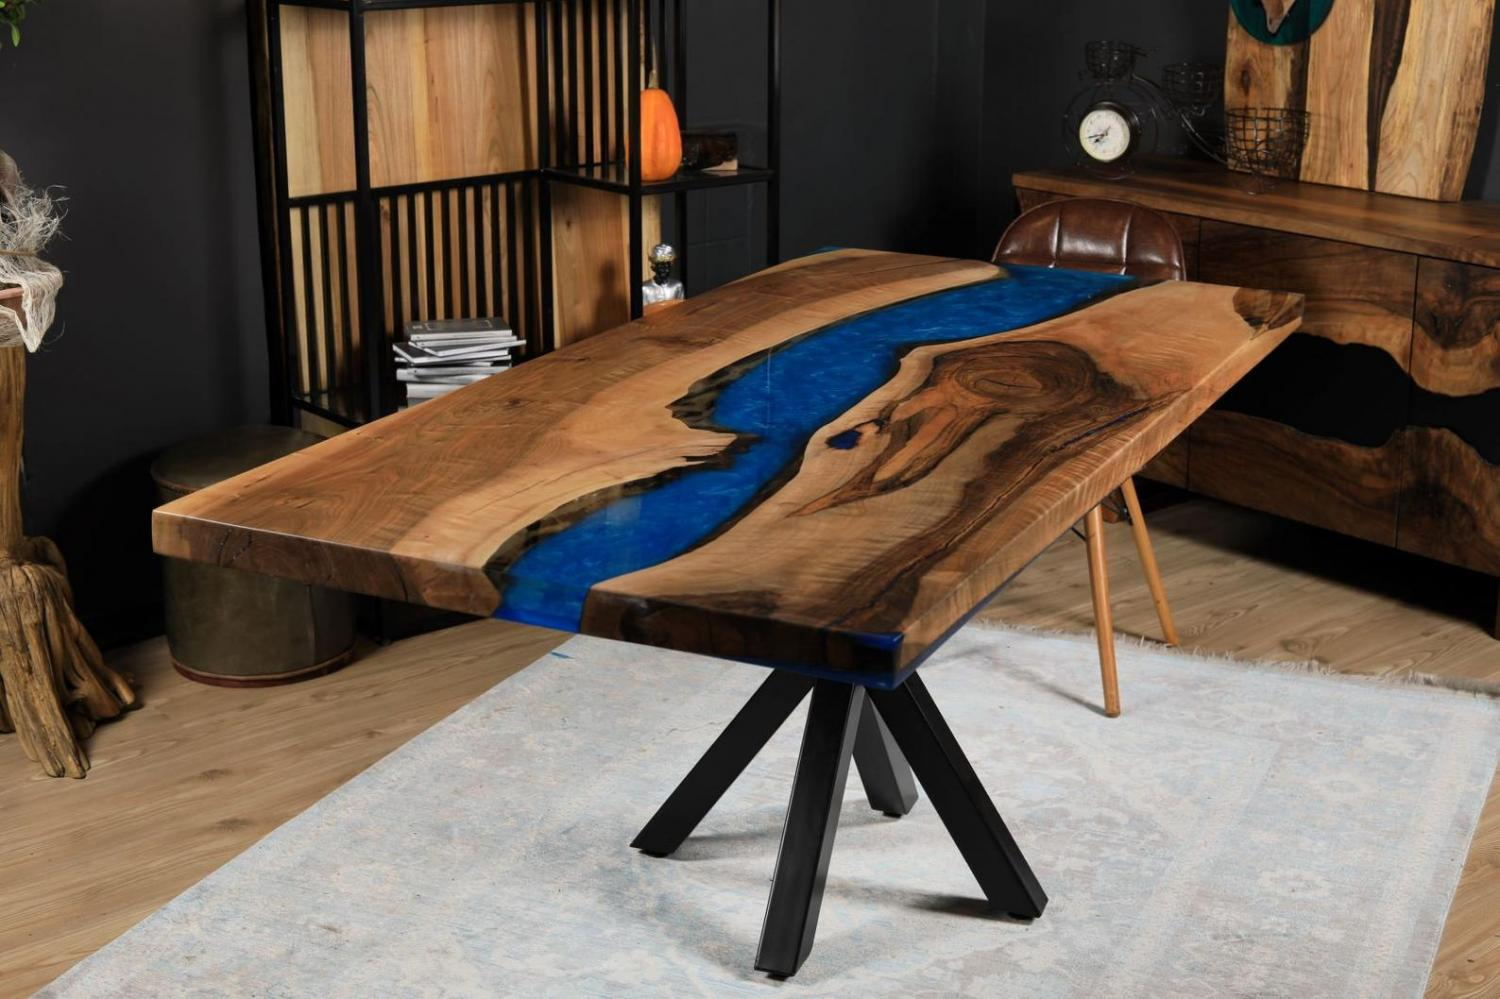 A classy epoxy table with a blue river that's fit for a study or office